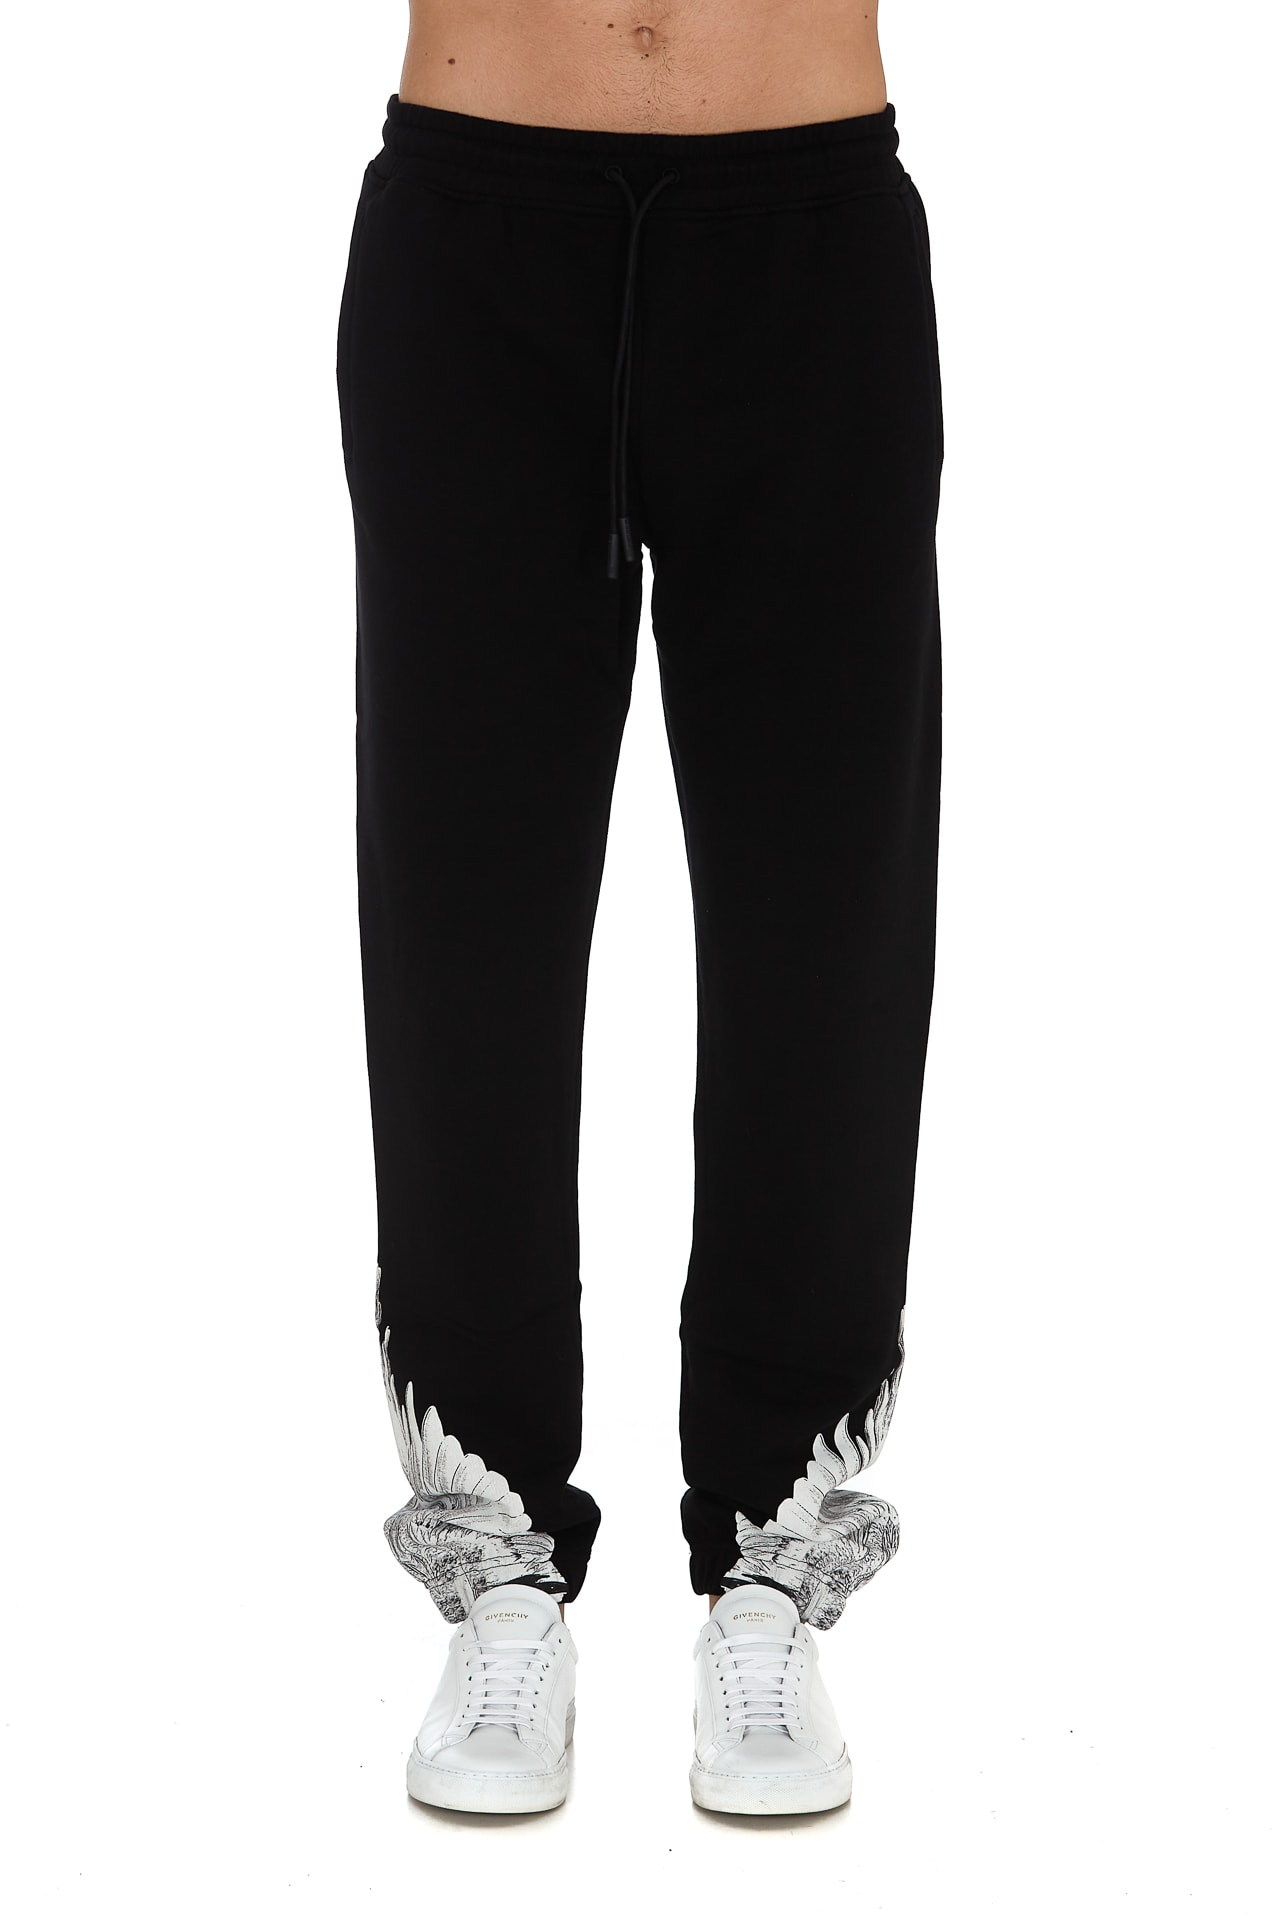 MARCELO BURLON COUNTY OF MILAN WINGS SWEATPANTS